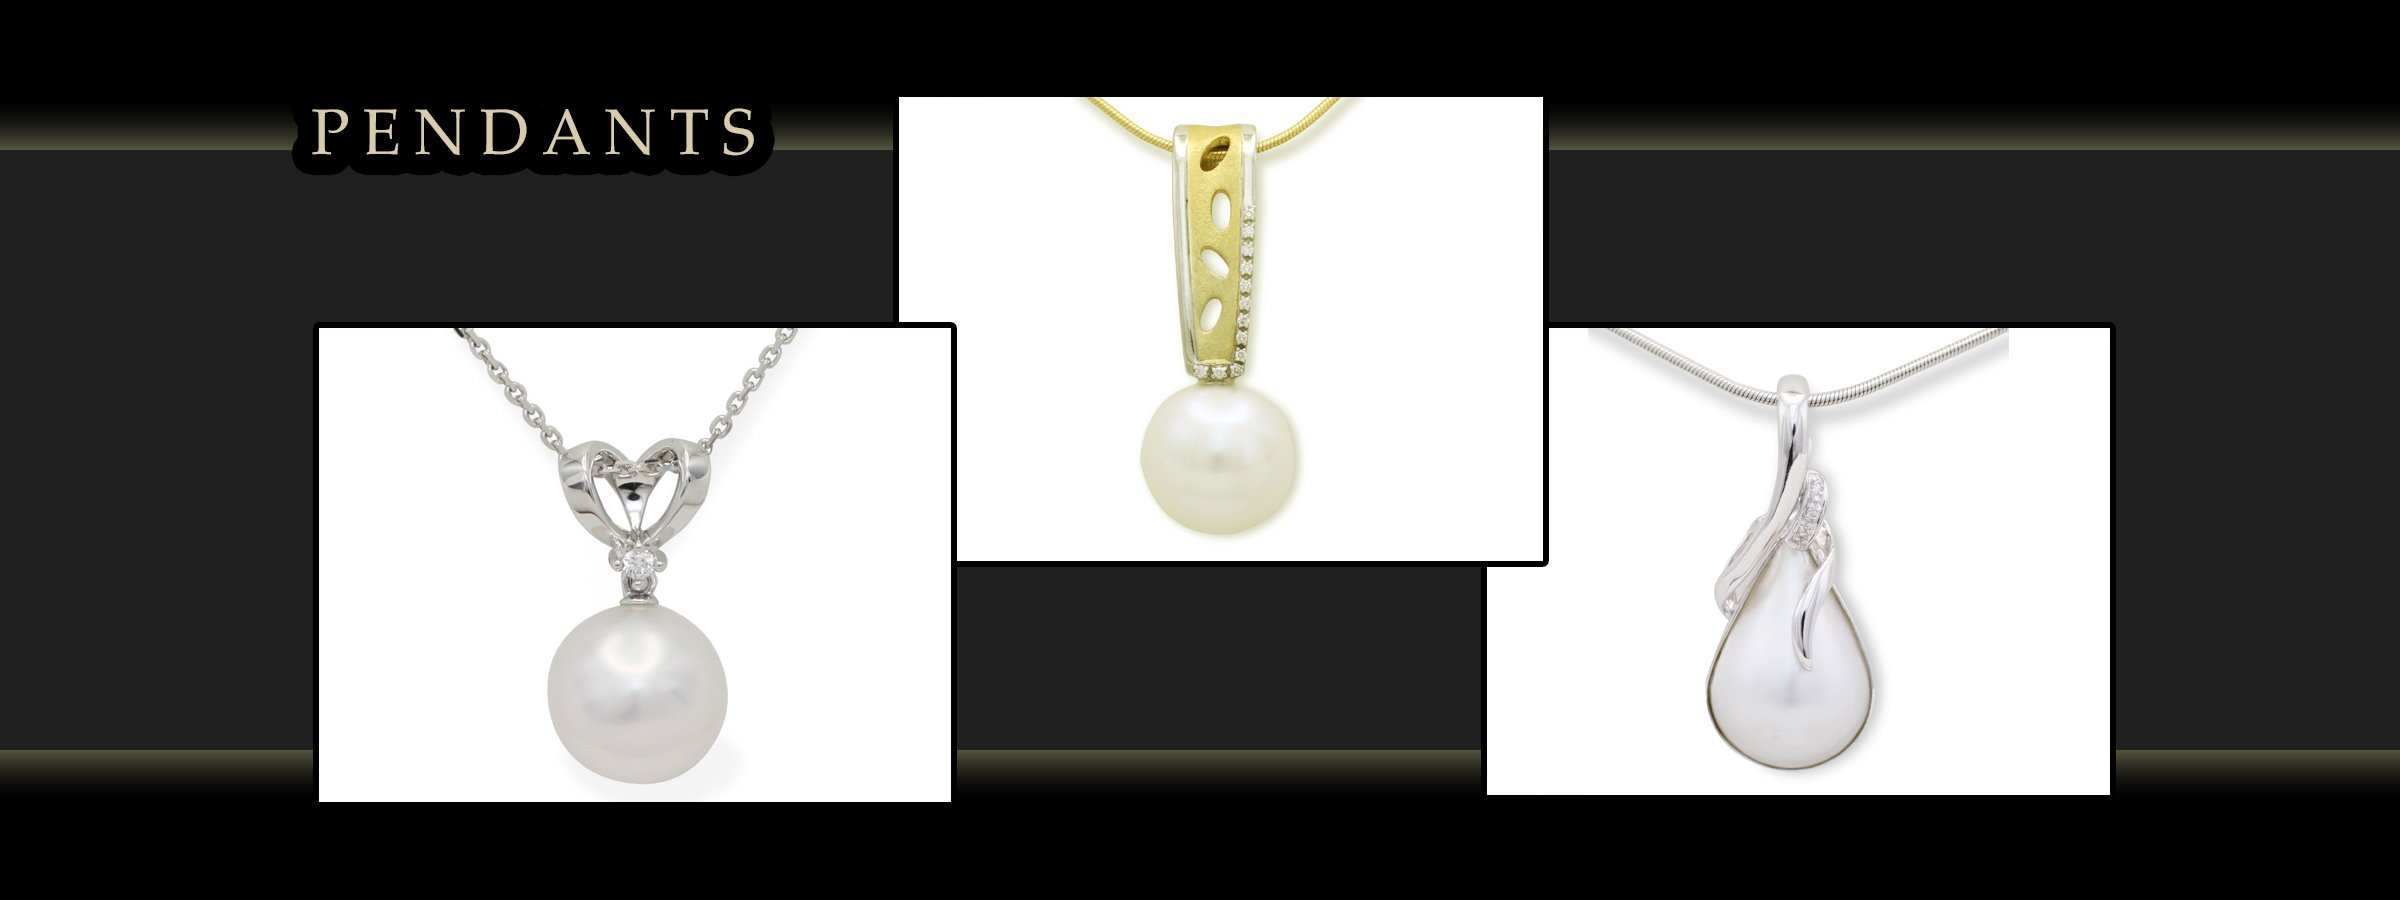 girls love pearls pendants with white and yellow gold images